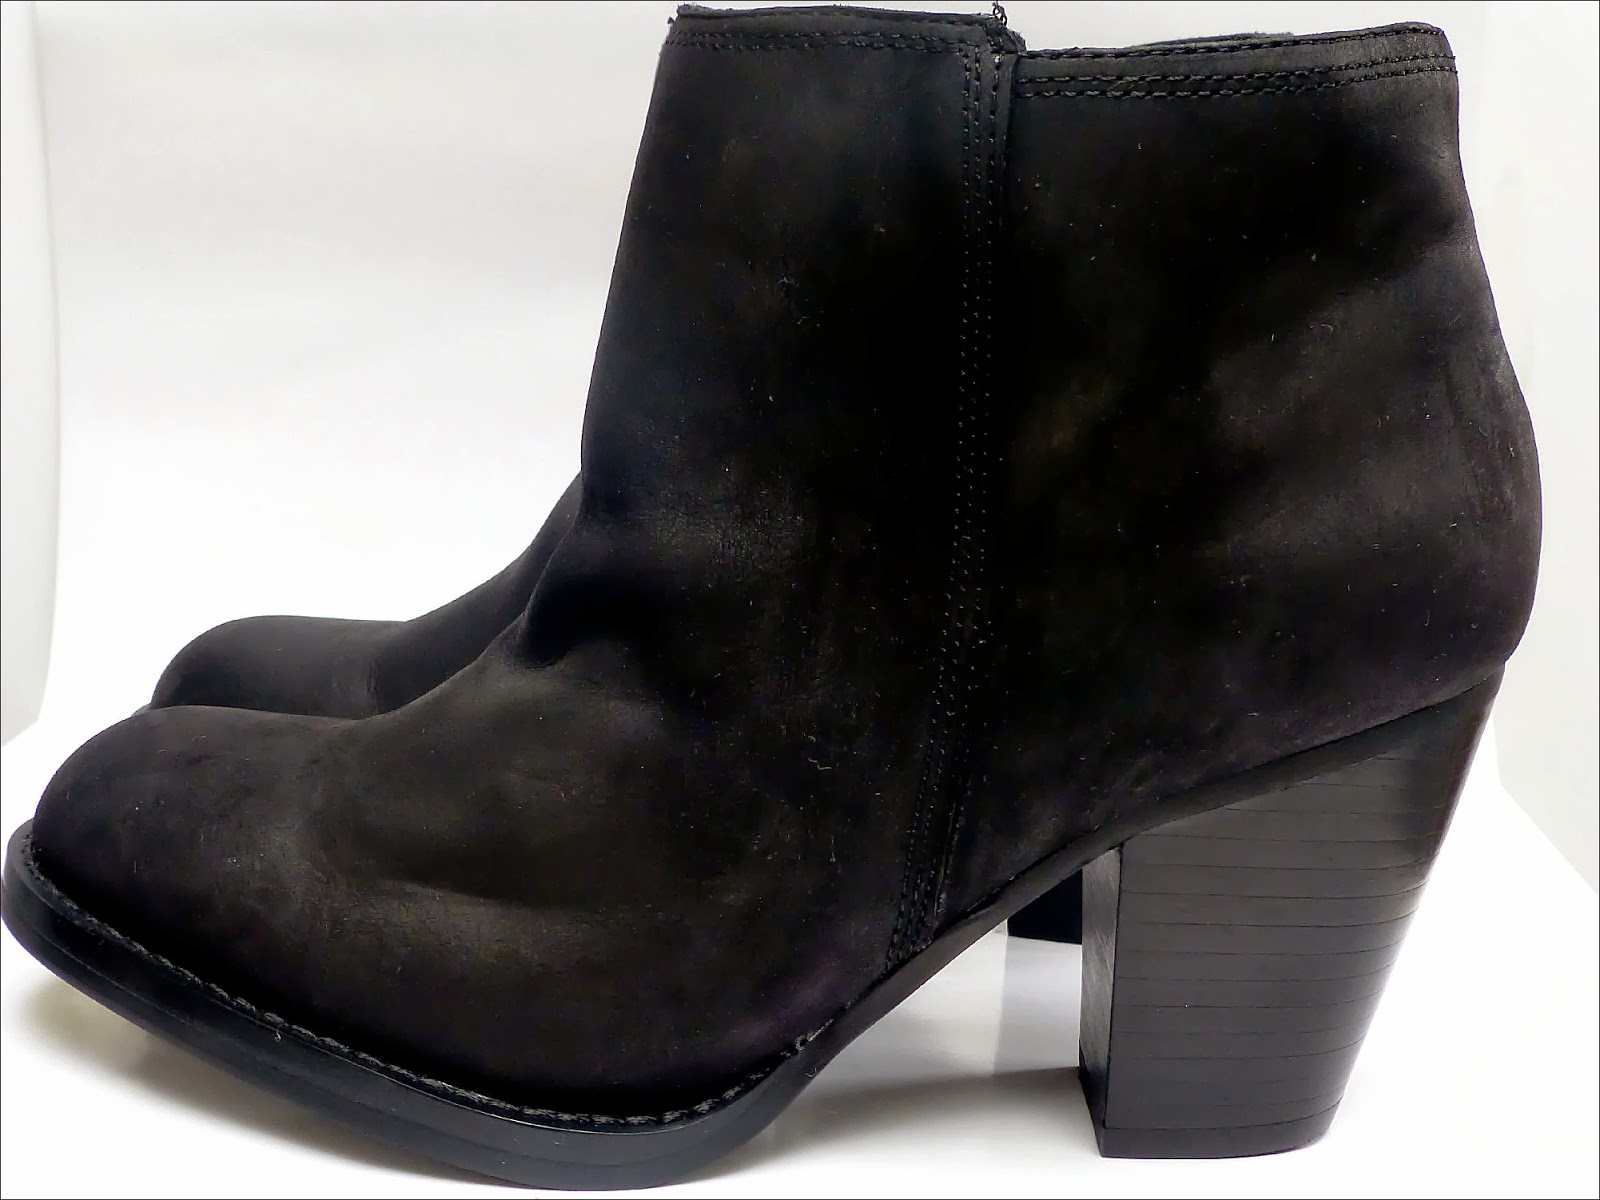 Black Autumn Winter Ankle Boots from New Look